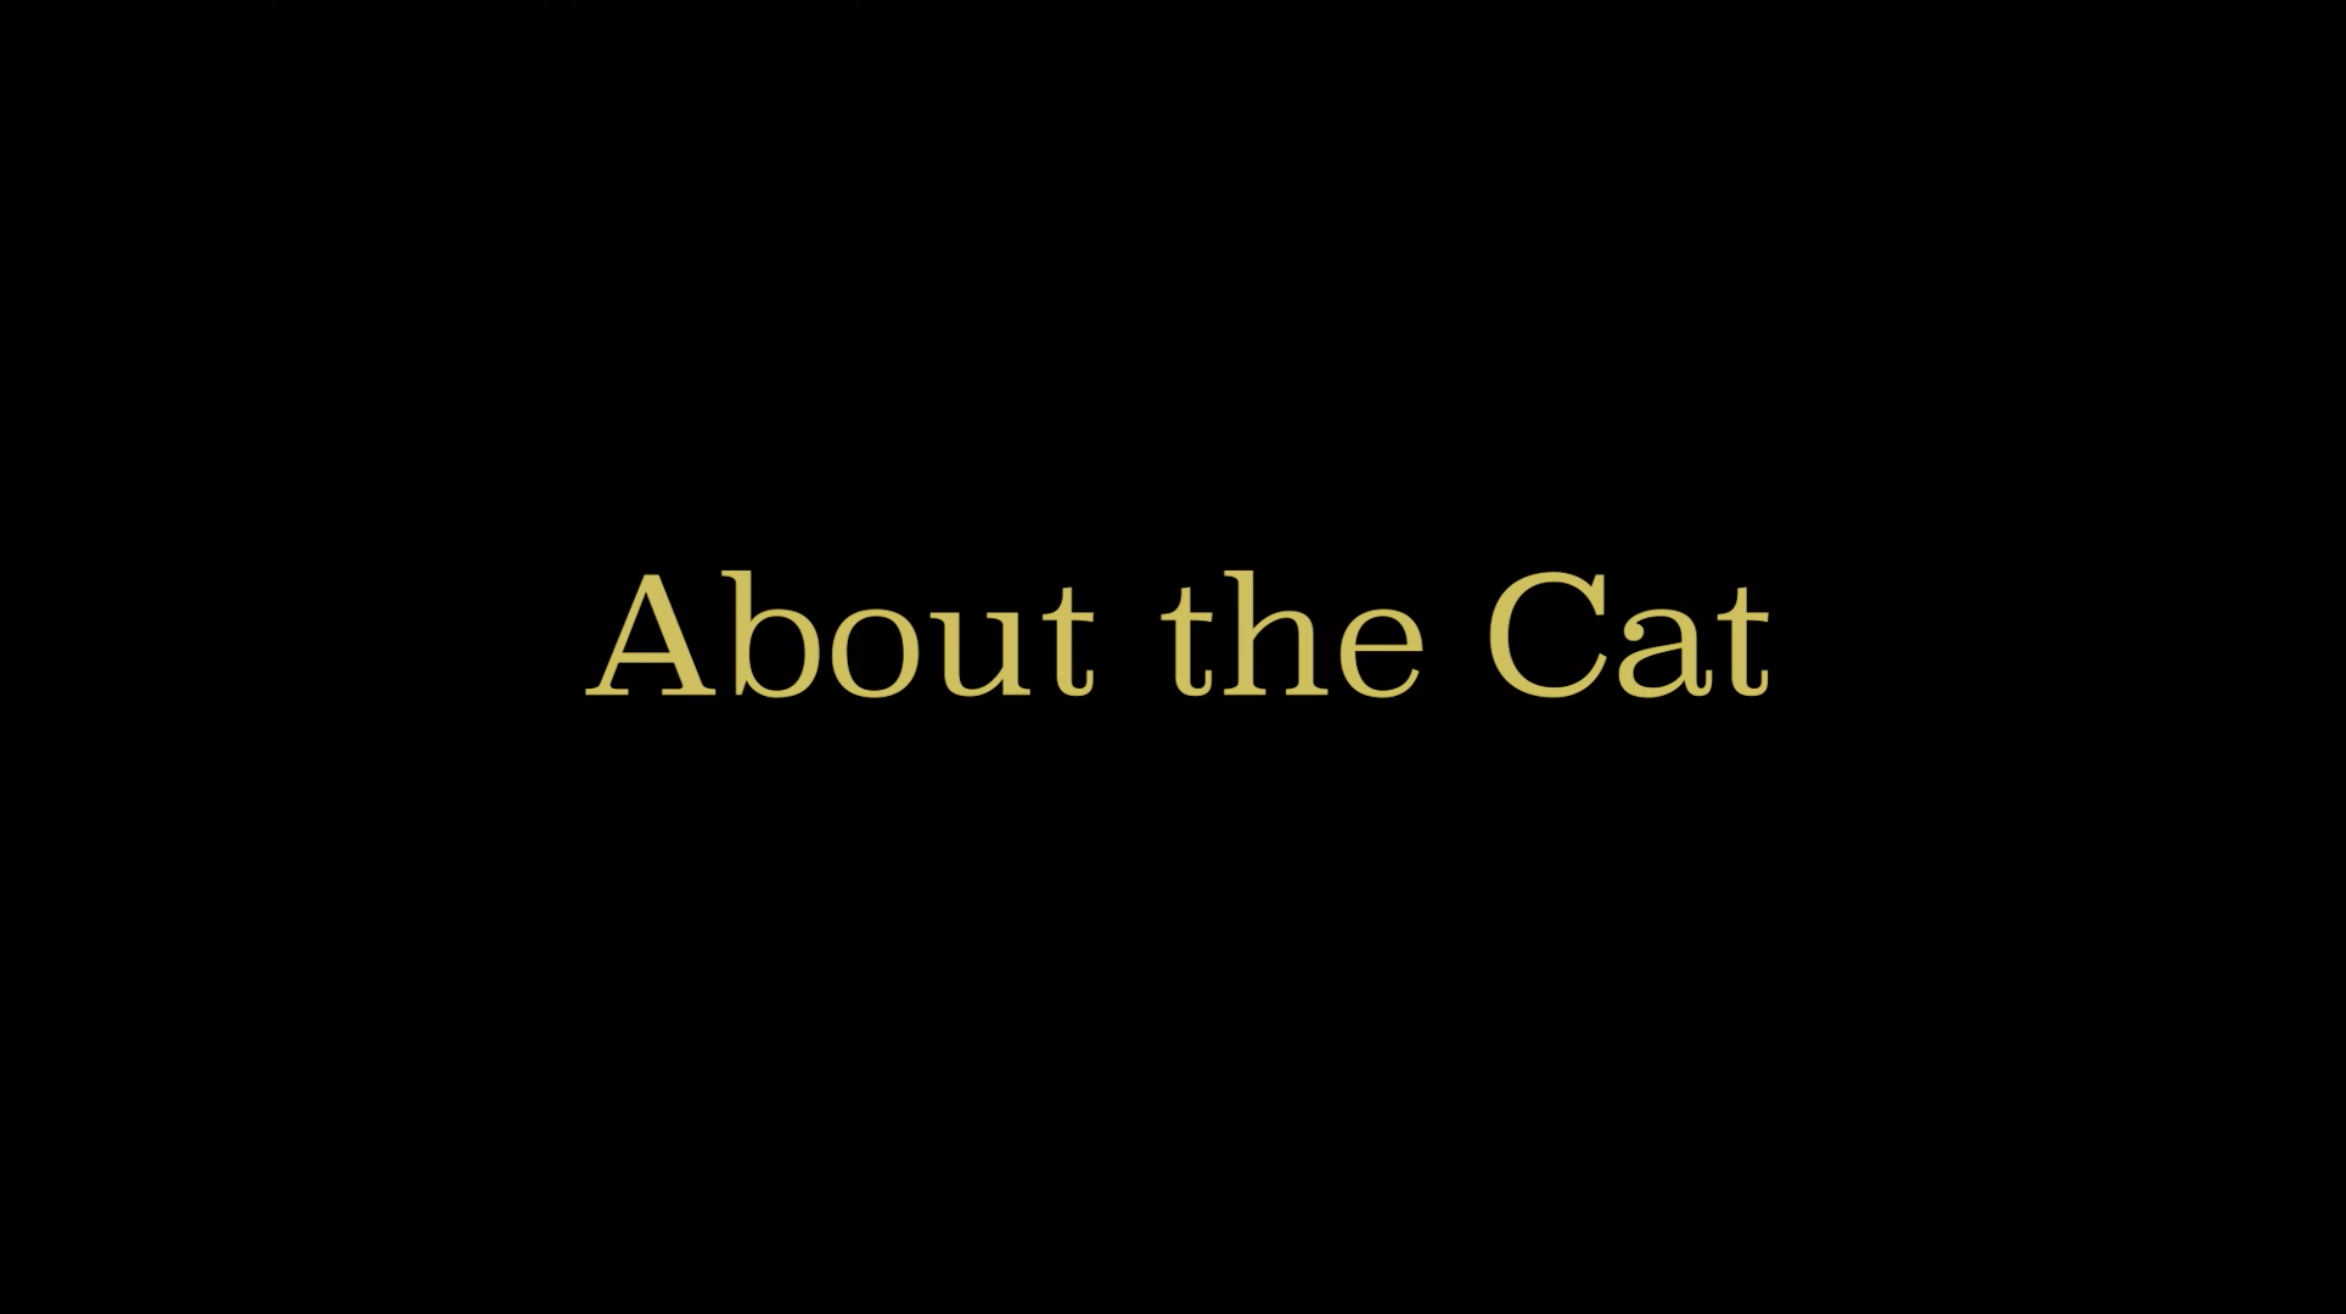 ABOUT THE CAT